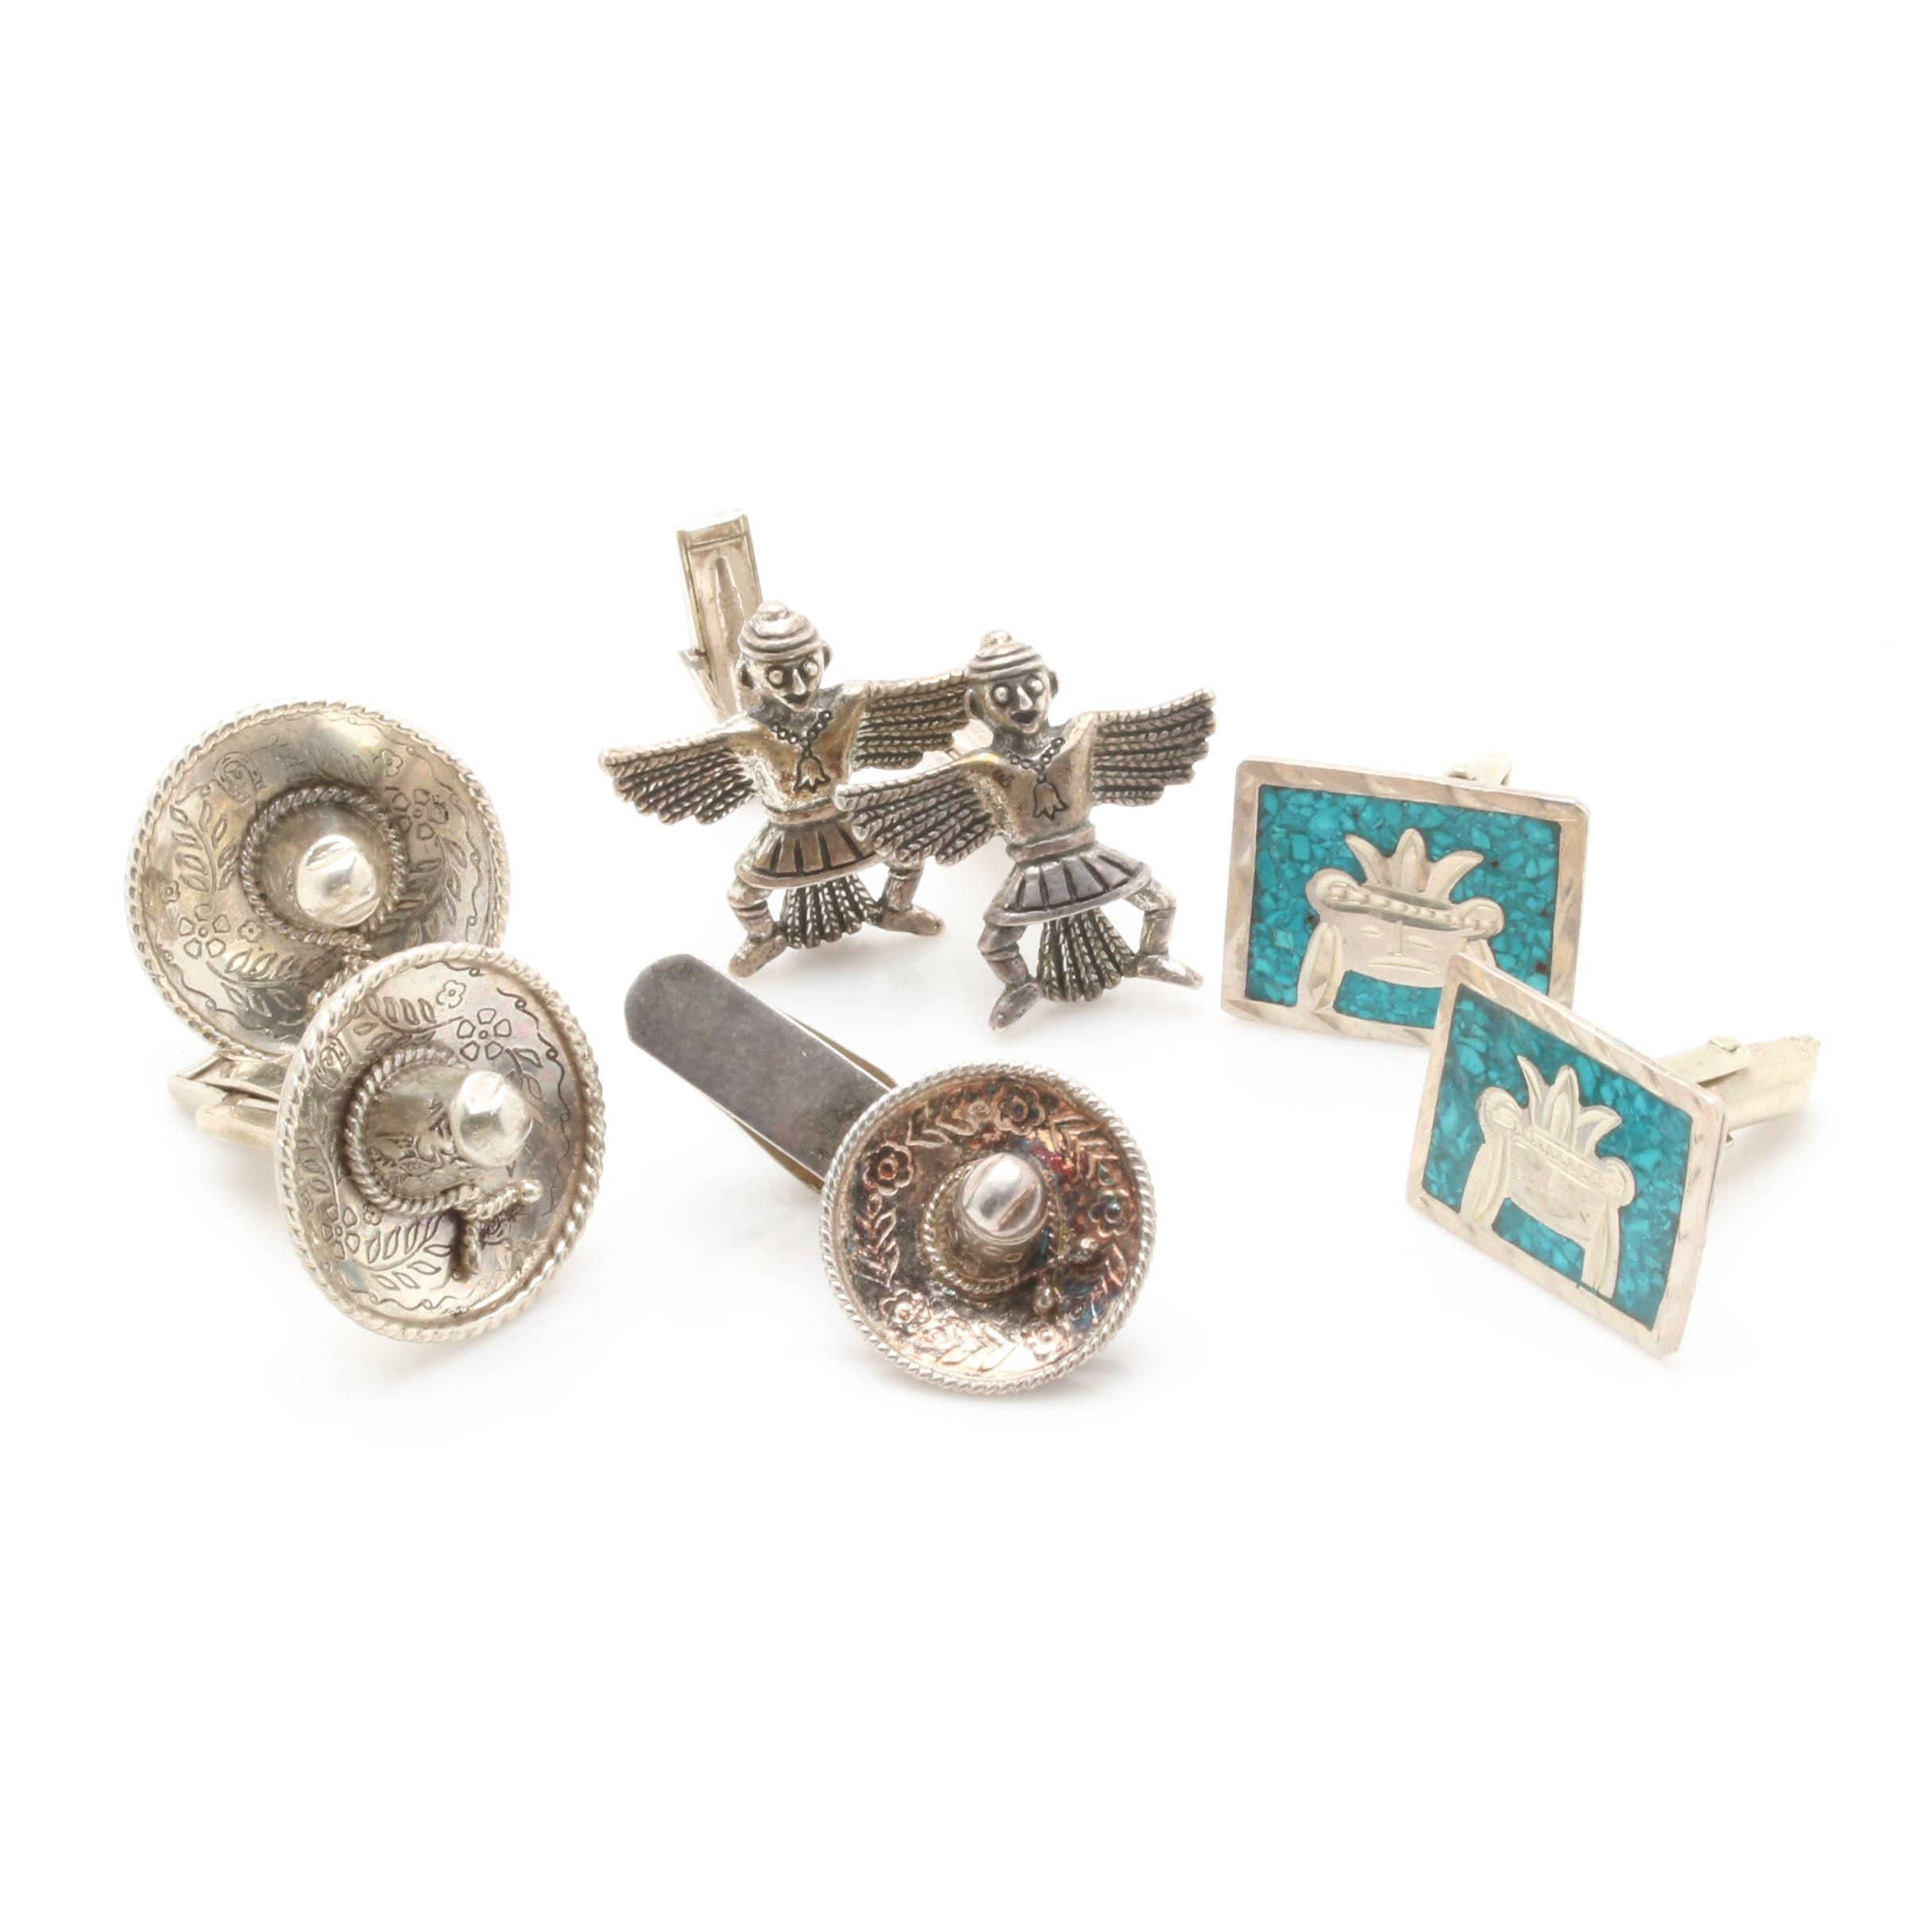 Sterling Silver and Silver Tone Cufflinks and Tie Bar